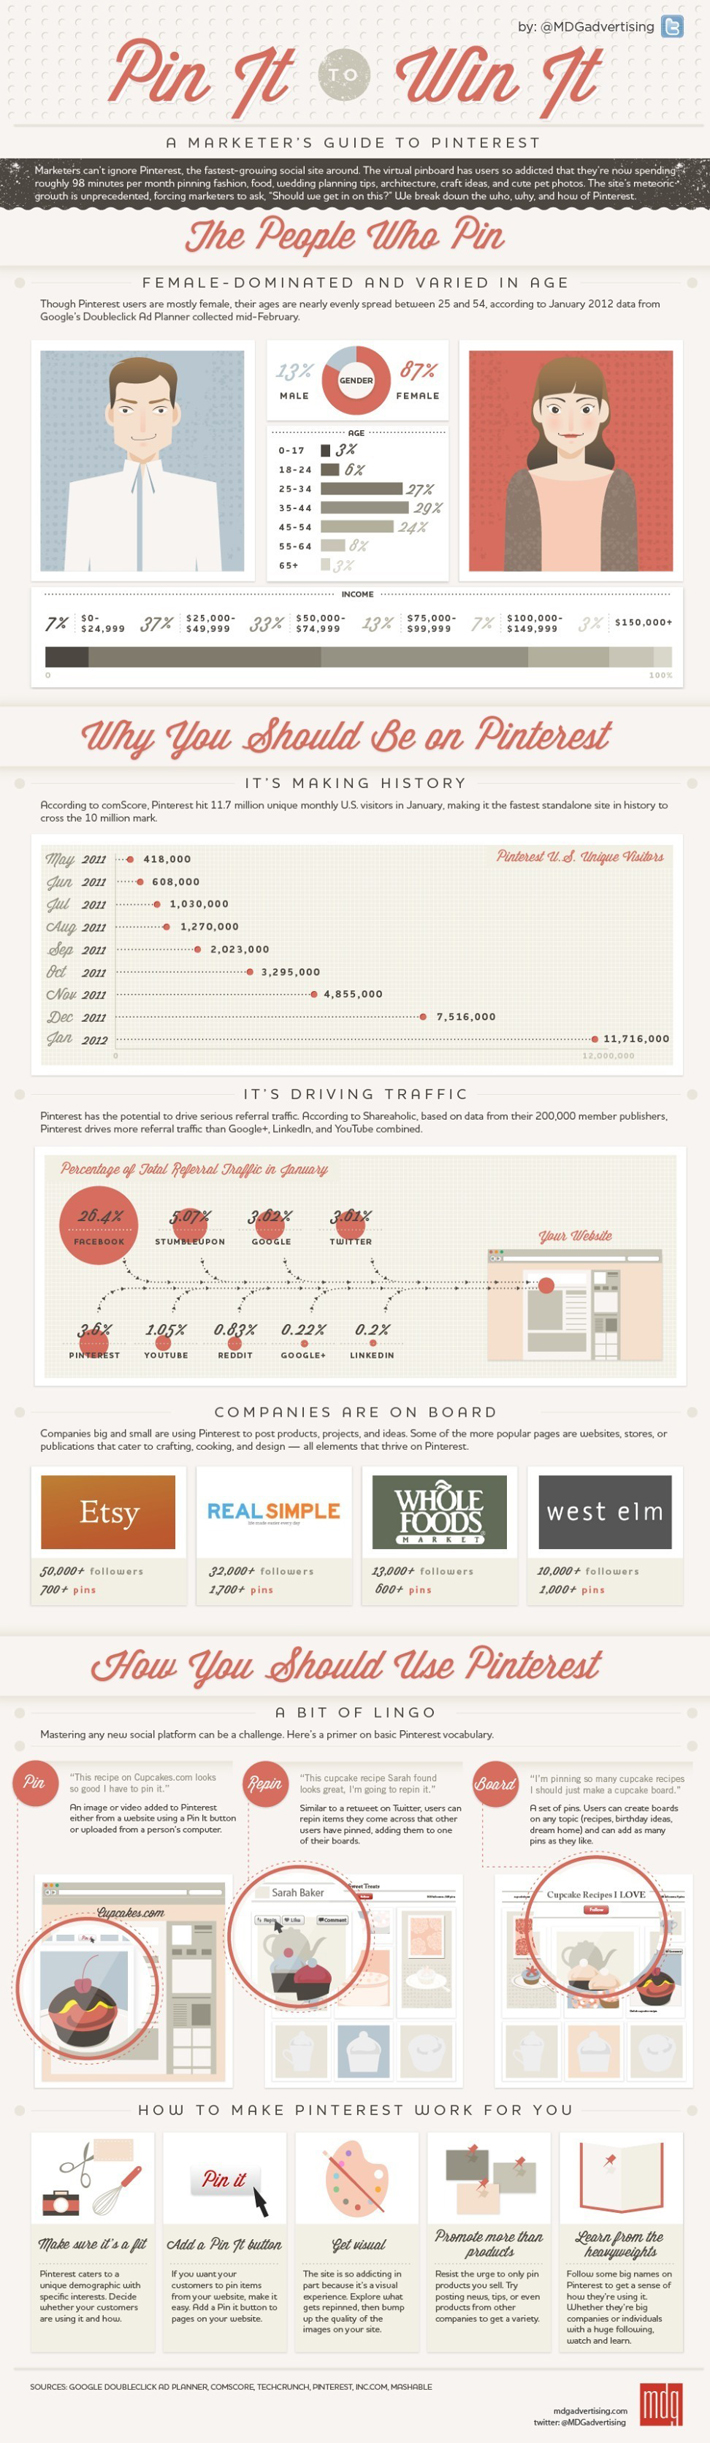 The Marketer's Guide to Pinterest [INFOGRAPHIC]